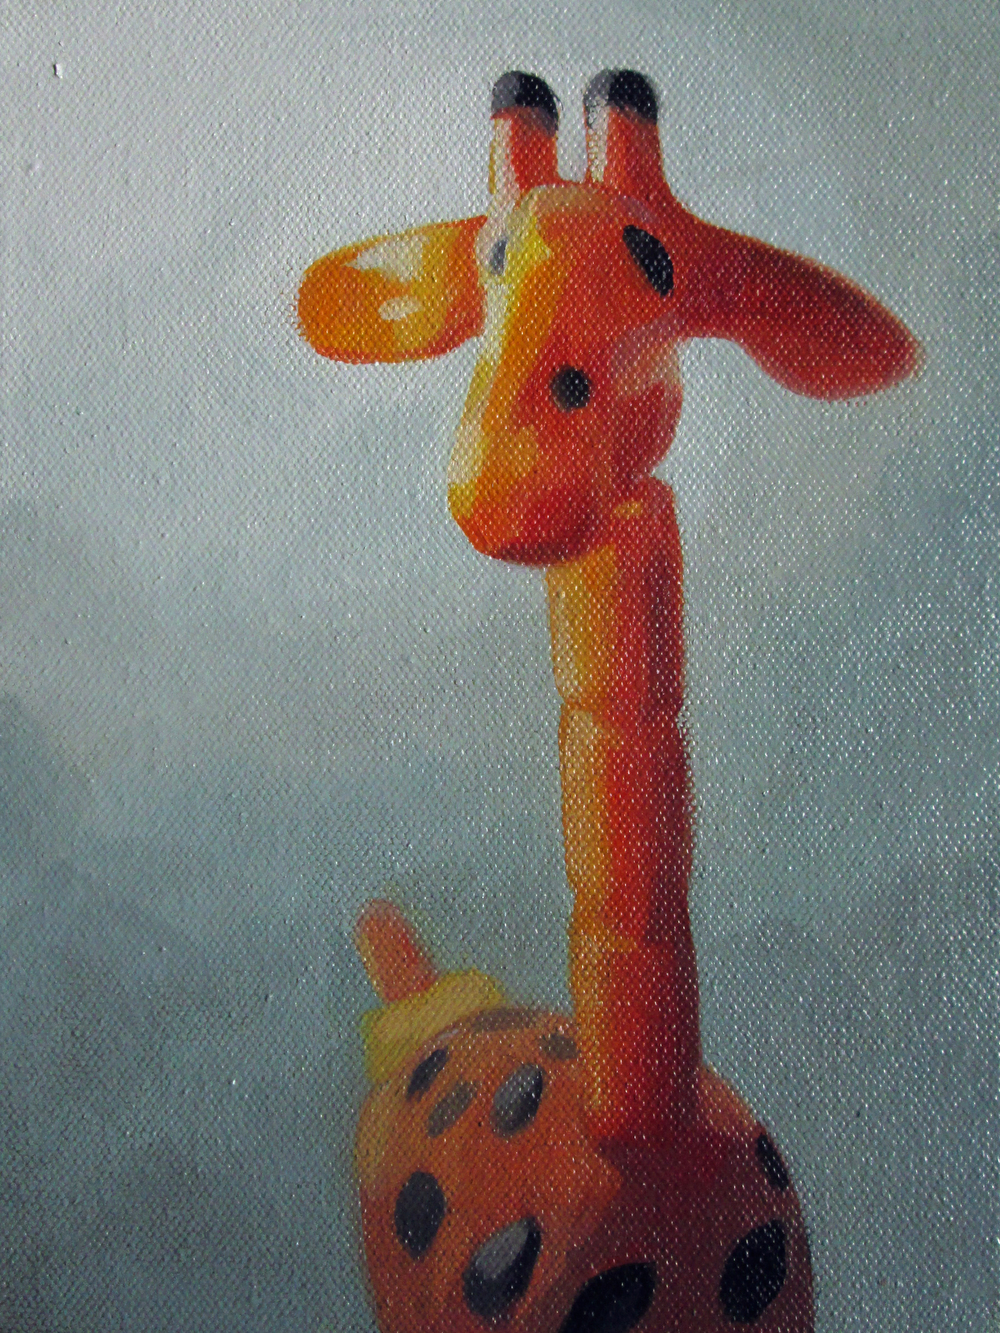 Dancing-Giraffe copy.jpg